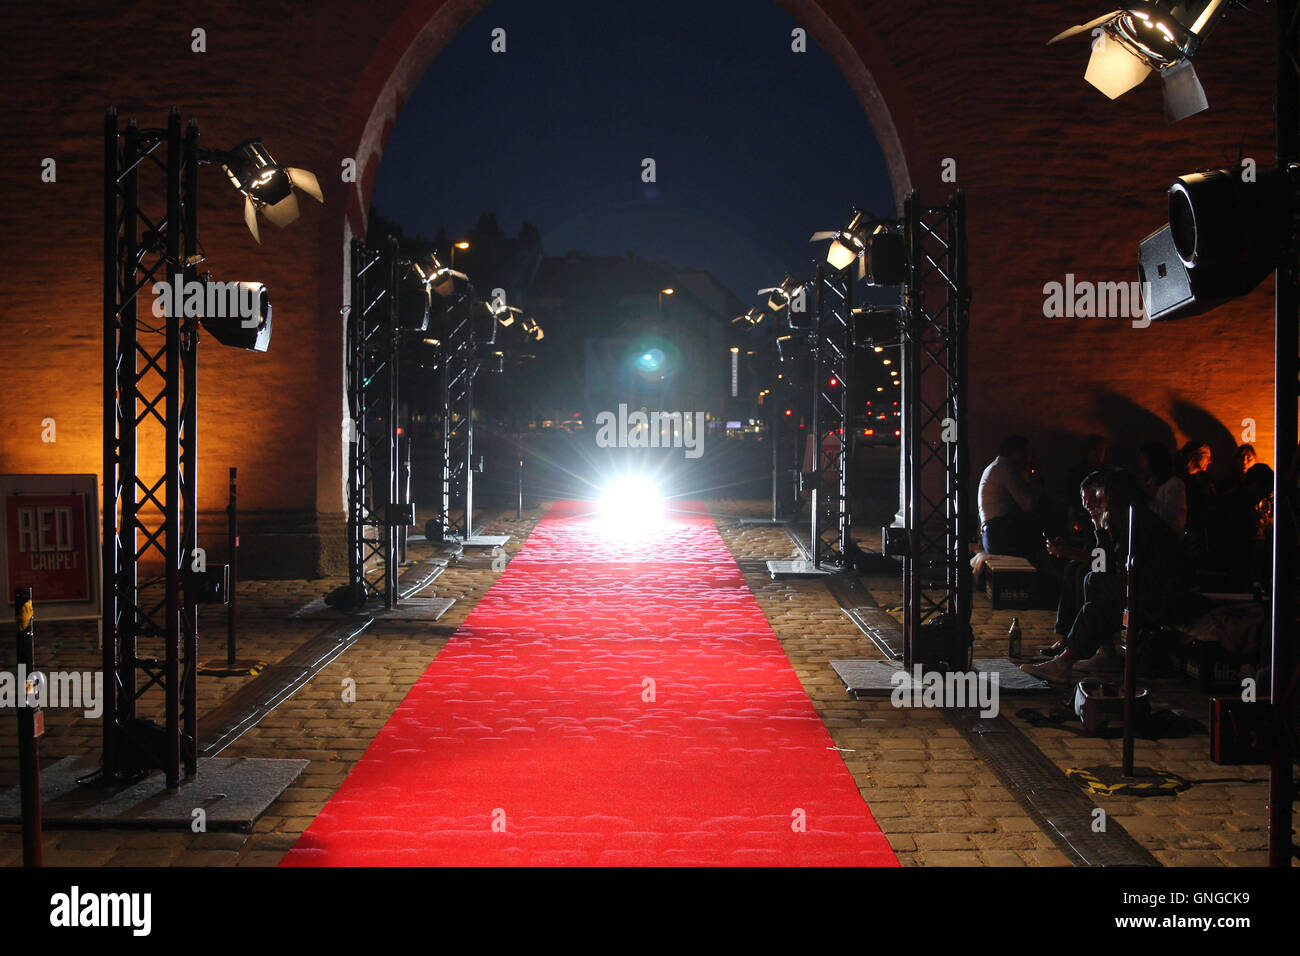 'The art action ''Red Carpet'' in Munich, 2014' - Stock Image